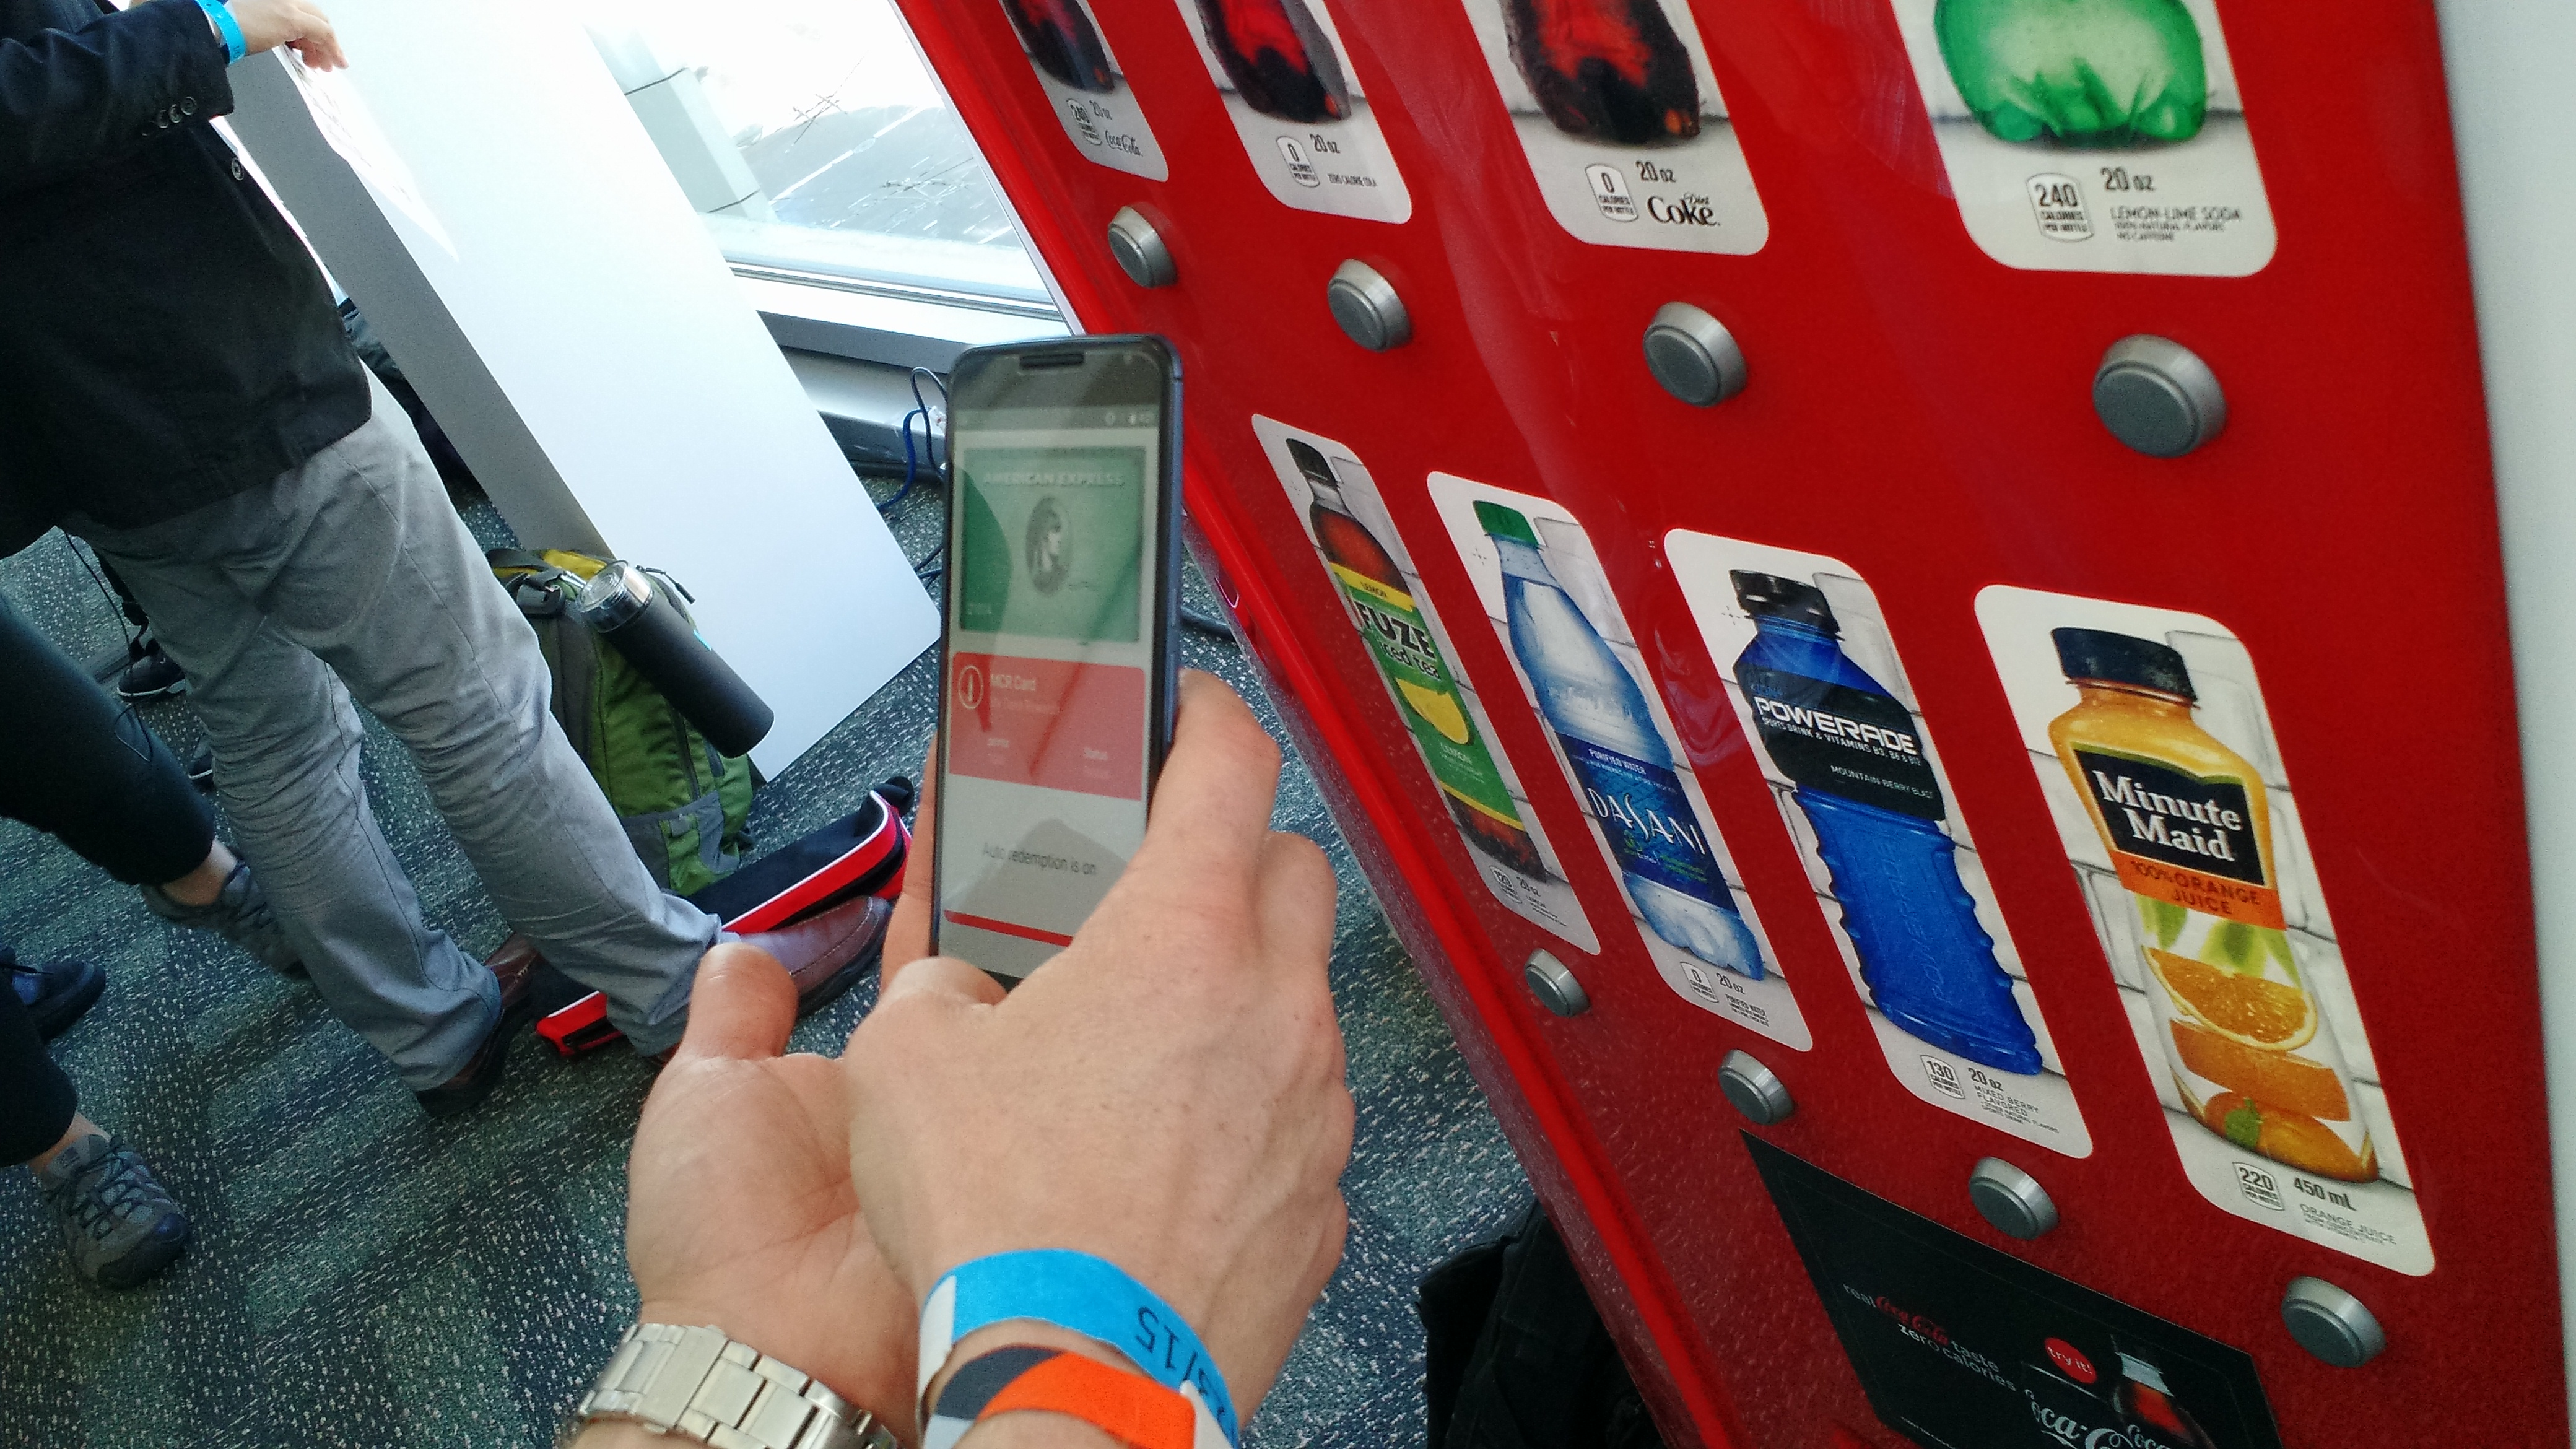 Android Pay being demonstrated on a Coke machine. It's using an American Express card and a Coca-Cola loyalty program.